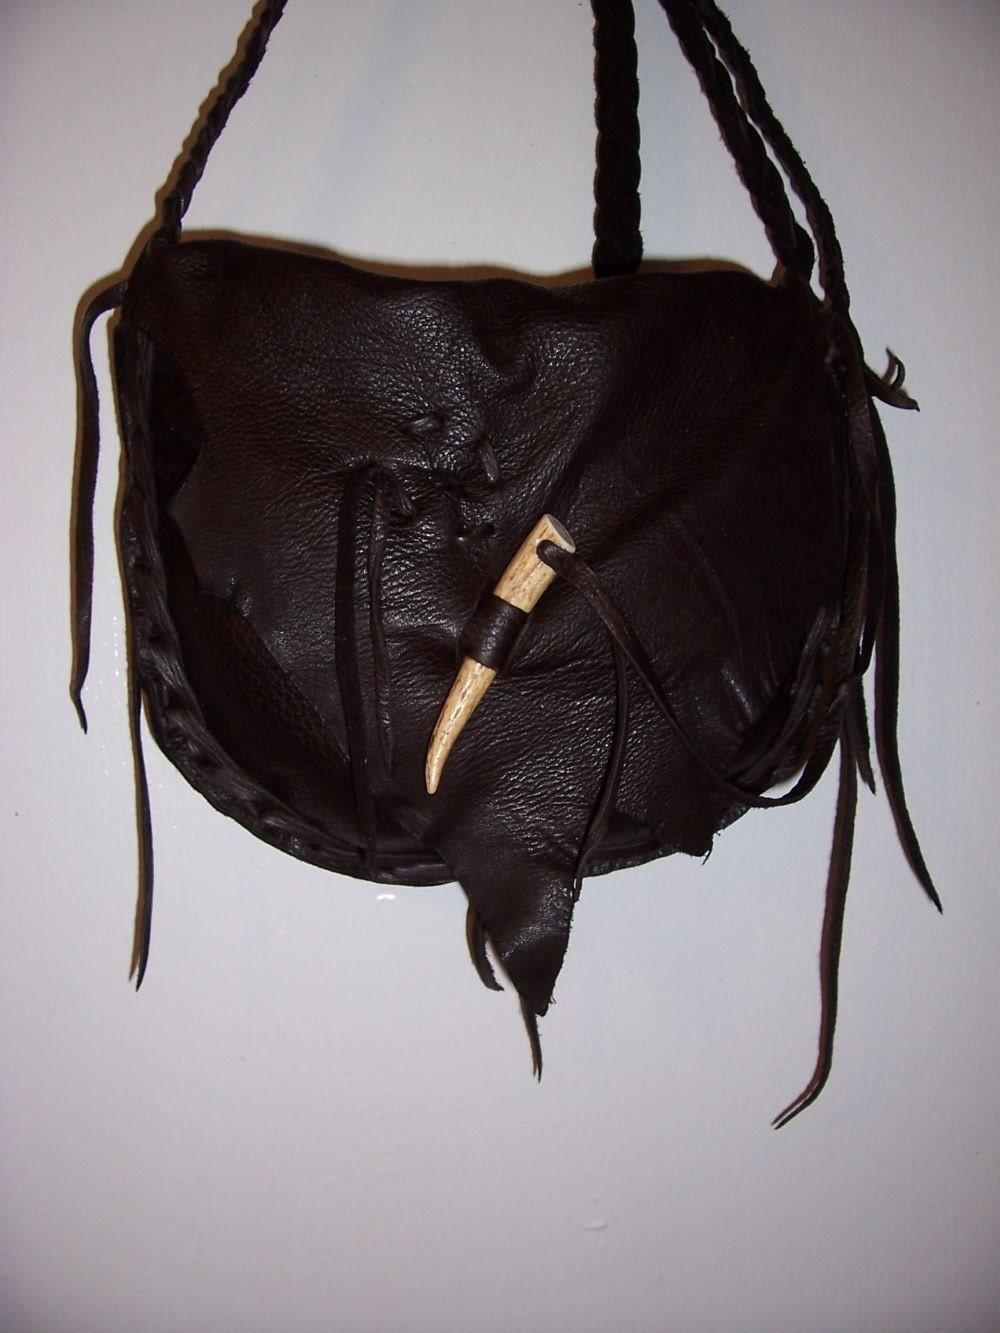 leather possibles bag by leatherbaglady on etsy